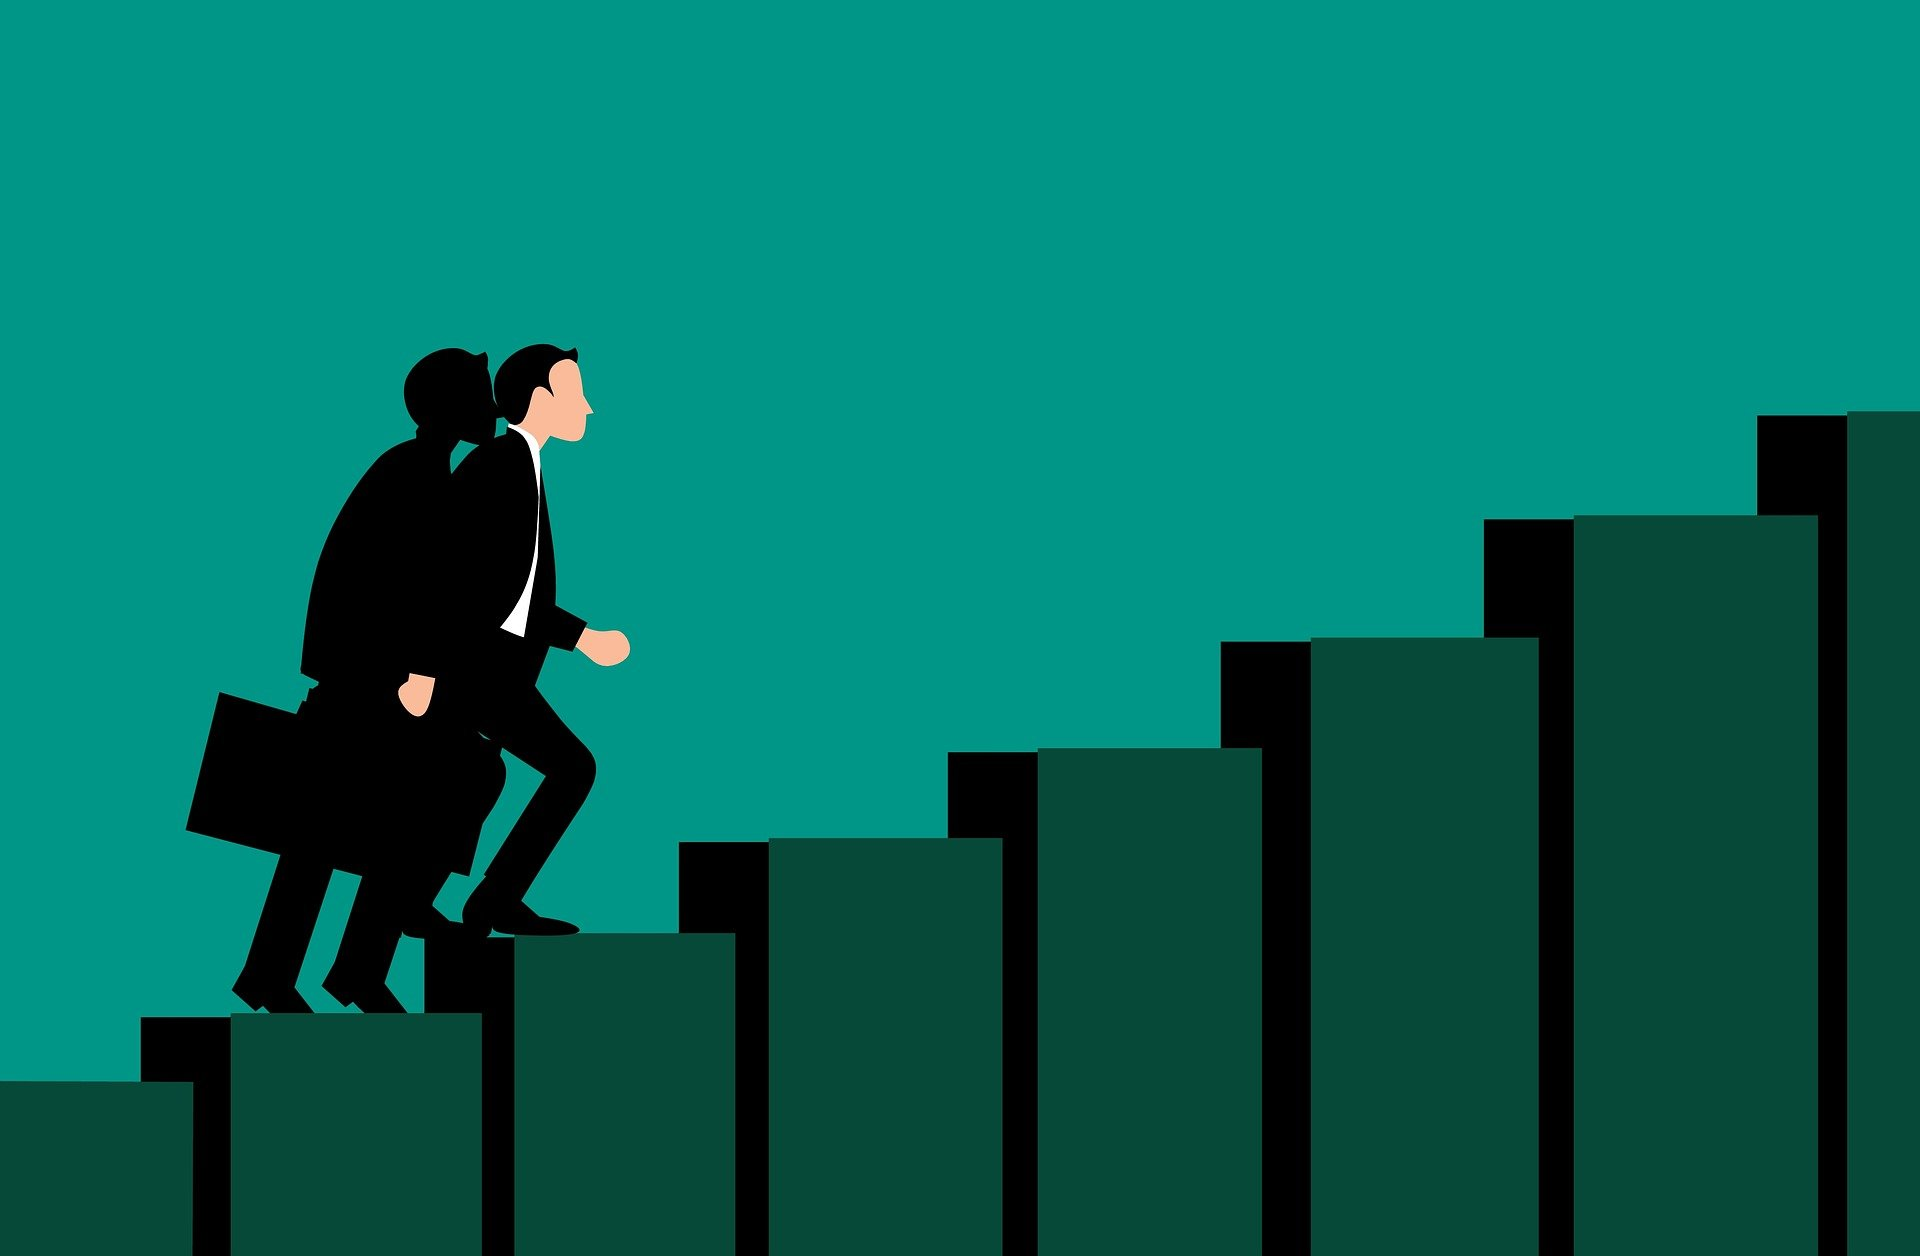 Publicly Sharing a Goal Could Help You Persist After Hitting Failure